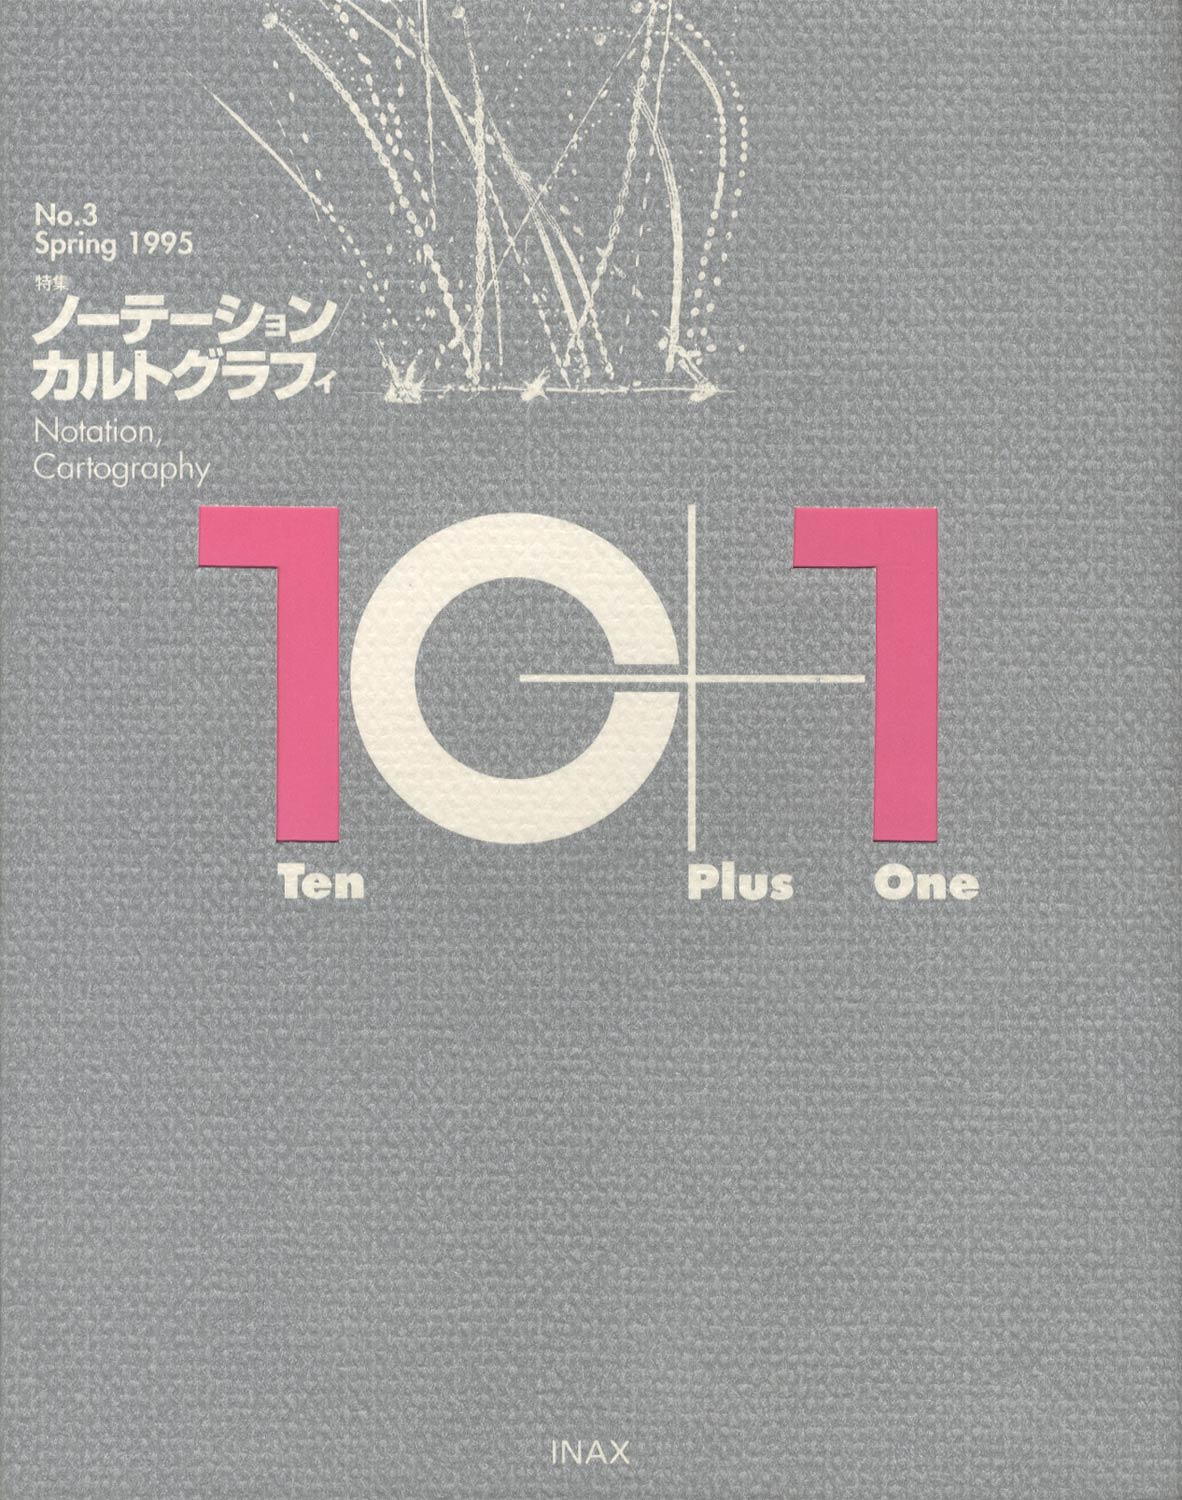 10+1 Ten Plus One No.3 Spring 1995